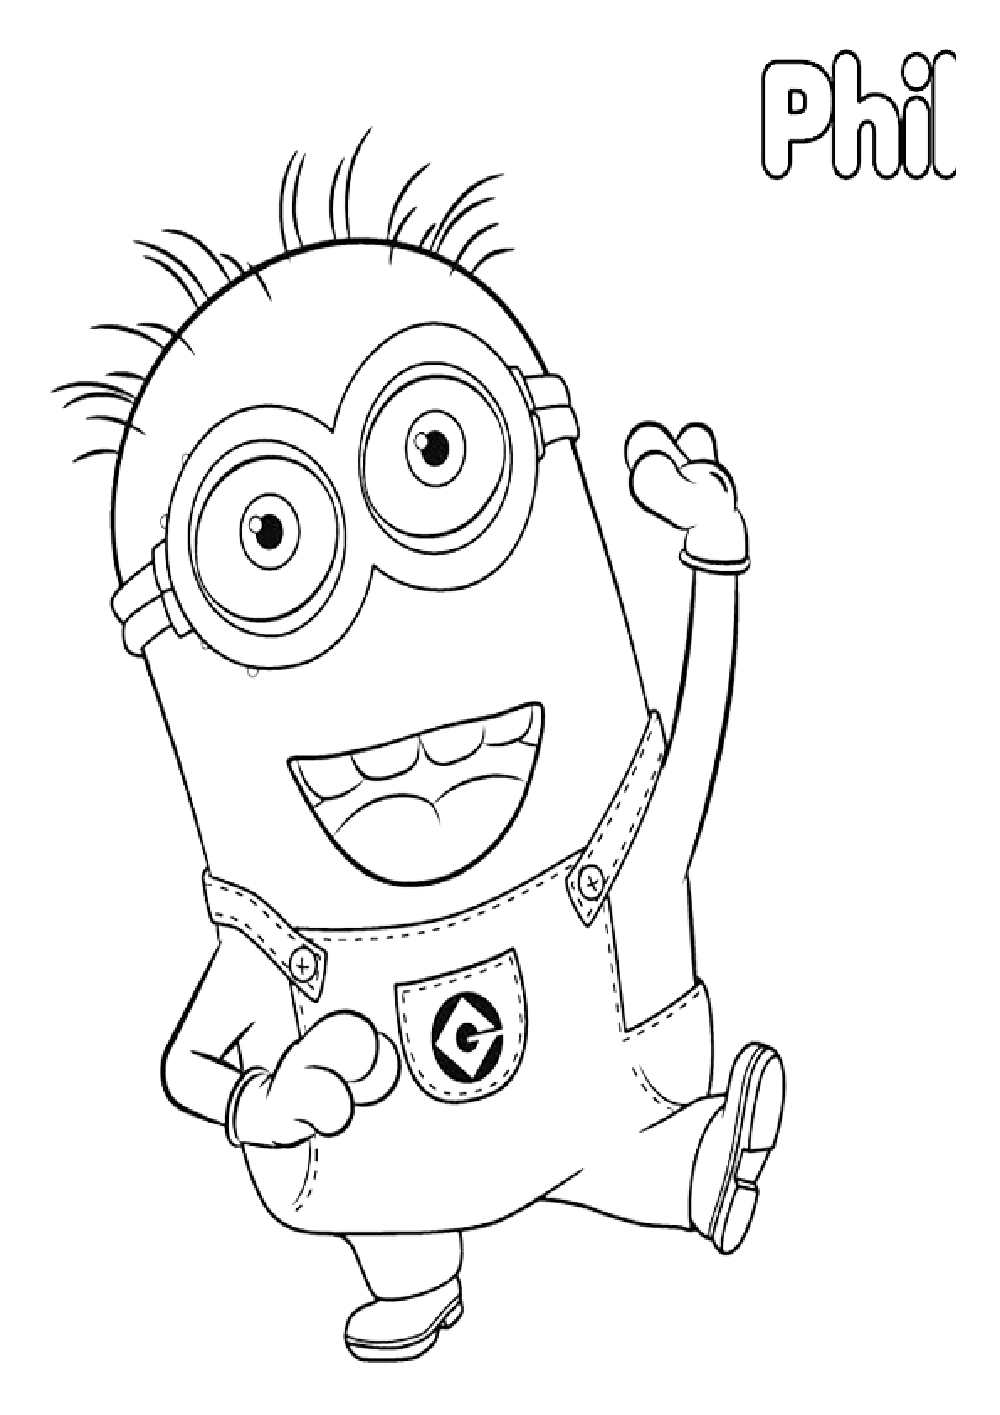 minion-phil-personaje-de-mi-villano-favorito-para-colorear ...